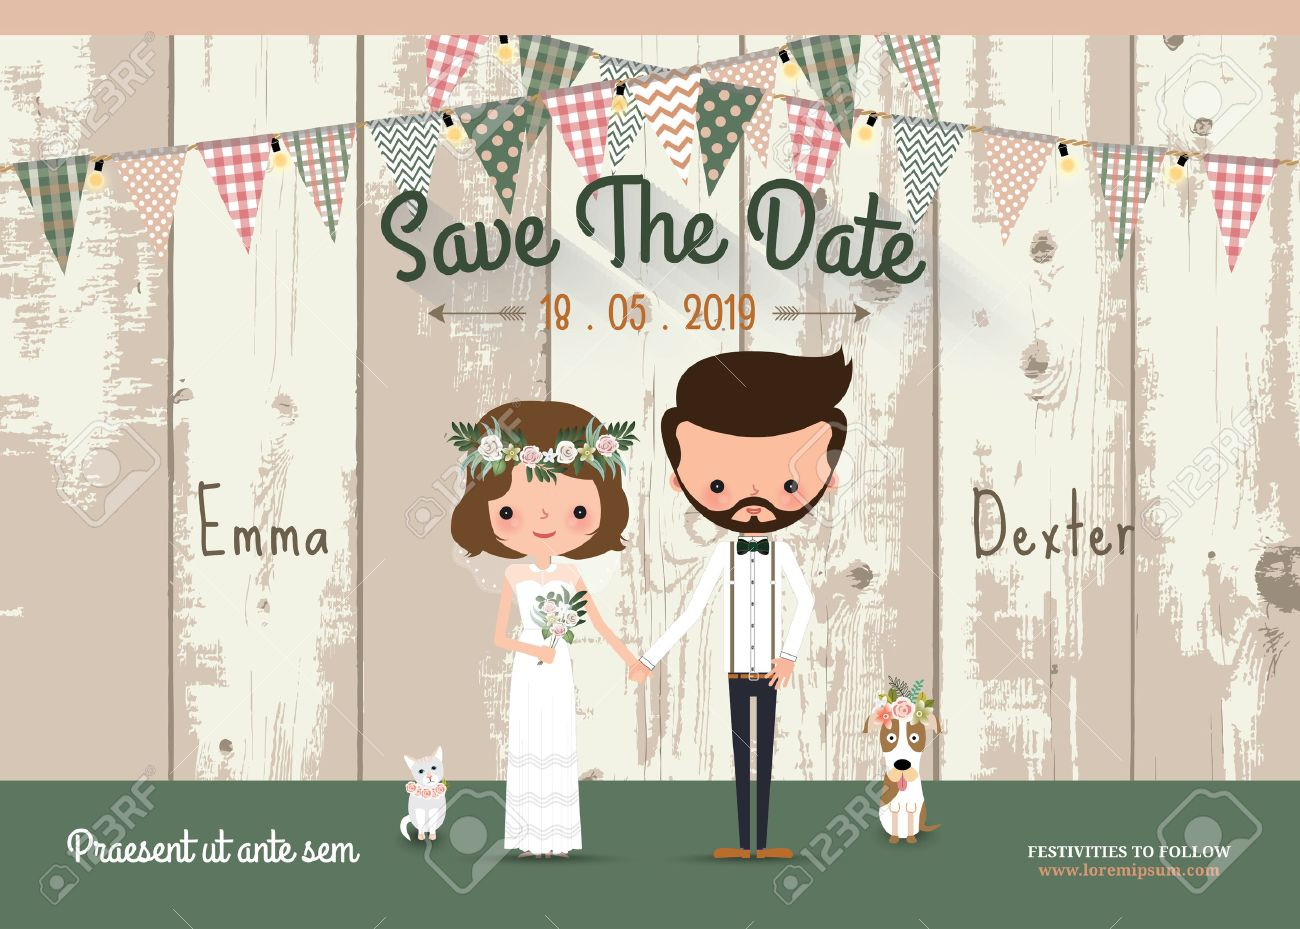 Couple Rustic Wedding Invitation Card And Save The Date With ...